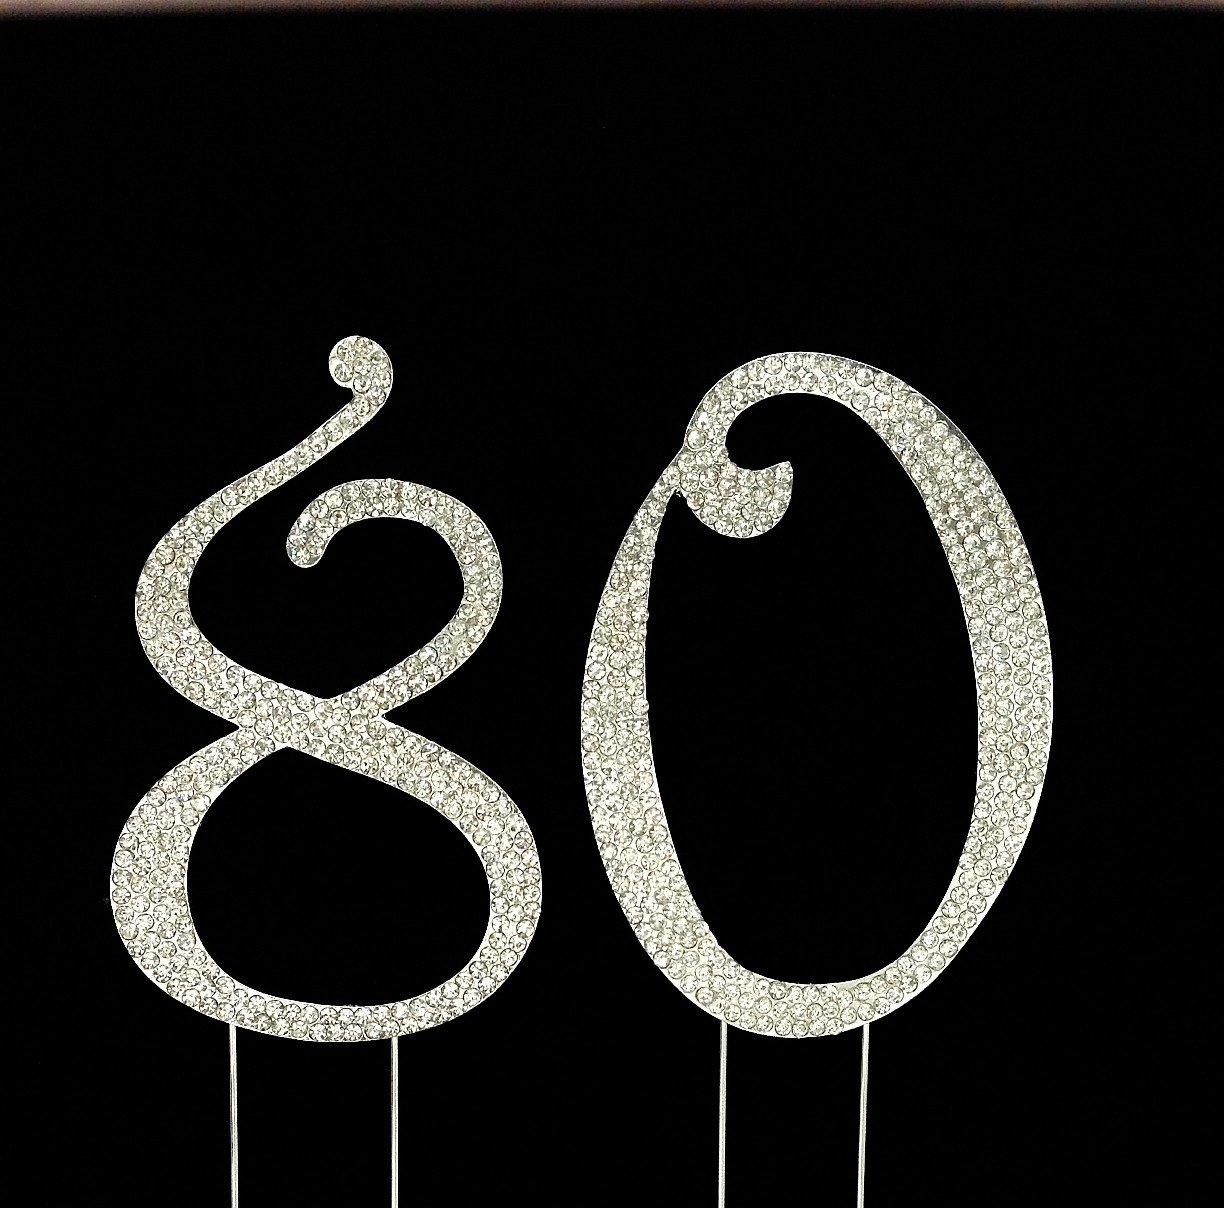 Amazoncom Number 80 for 80th Birthday or Anniversary Cake Topper